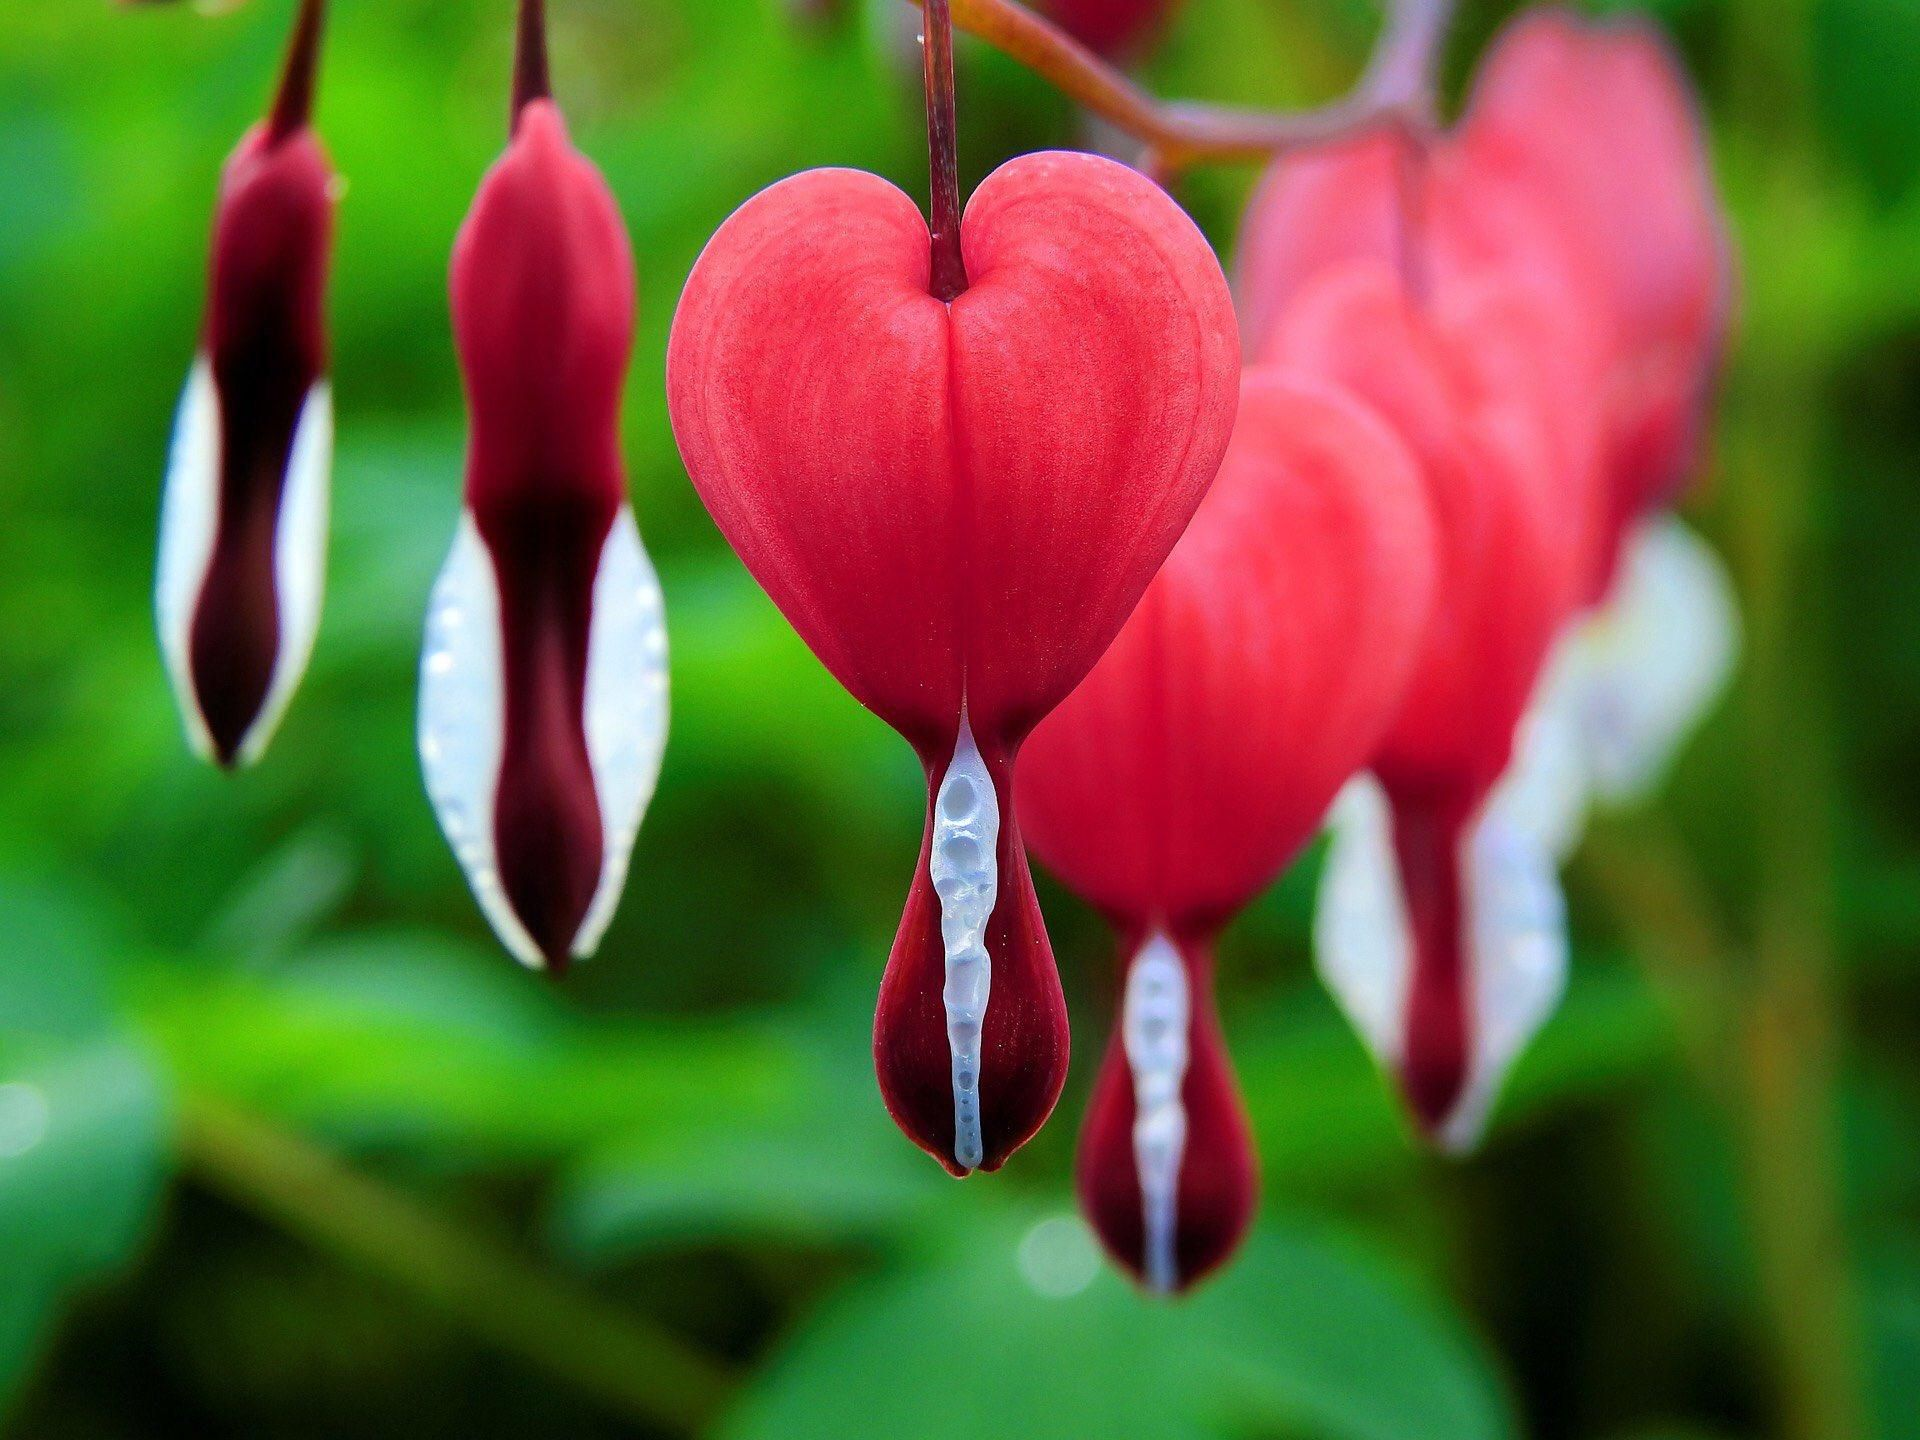 The Bleeding Heart Flower Lamprocapnos Spectabilis Although Aesthetically Pleasing This Flower Is In 2020 Bleeding Heart Flower Bleeding Heart Plant Bleeding Heart